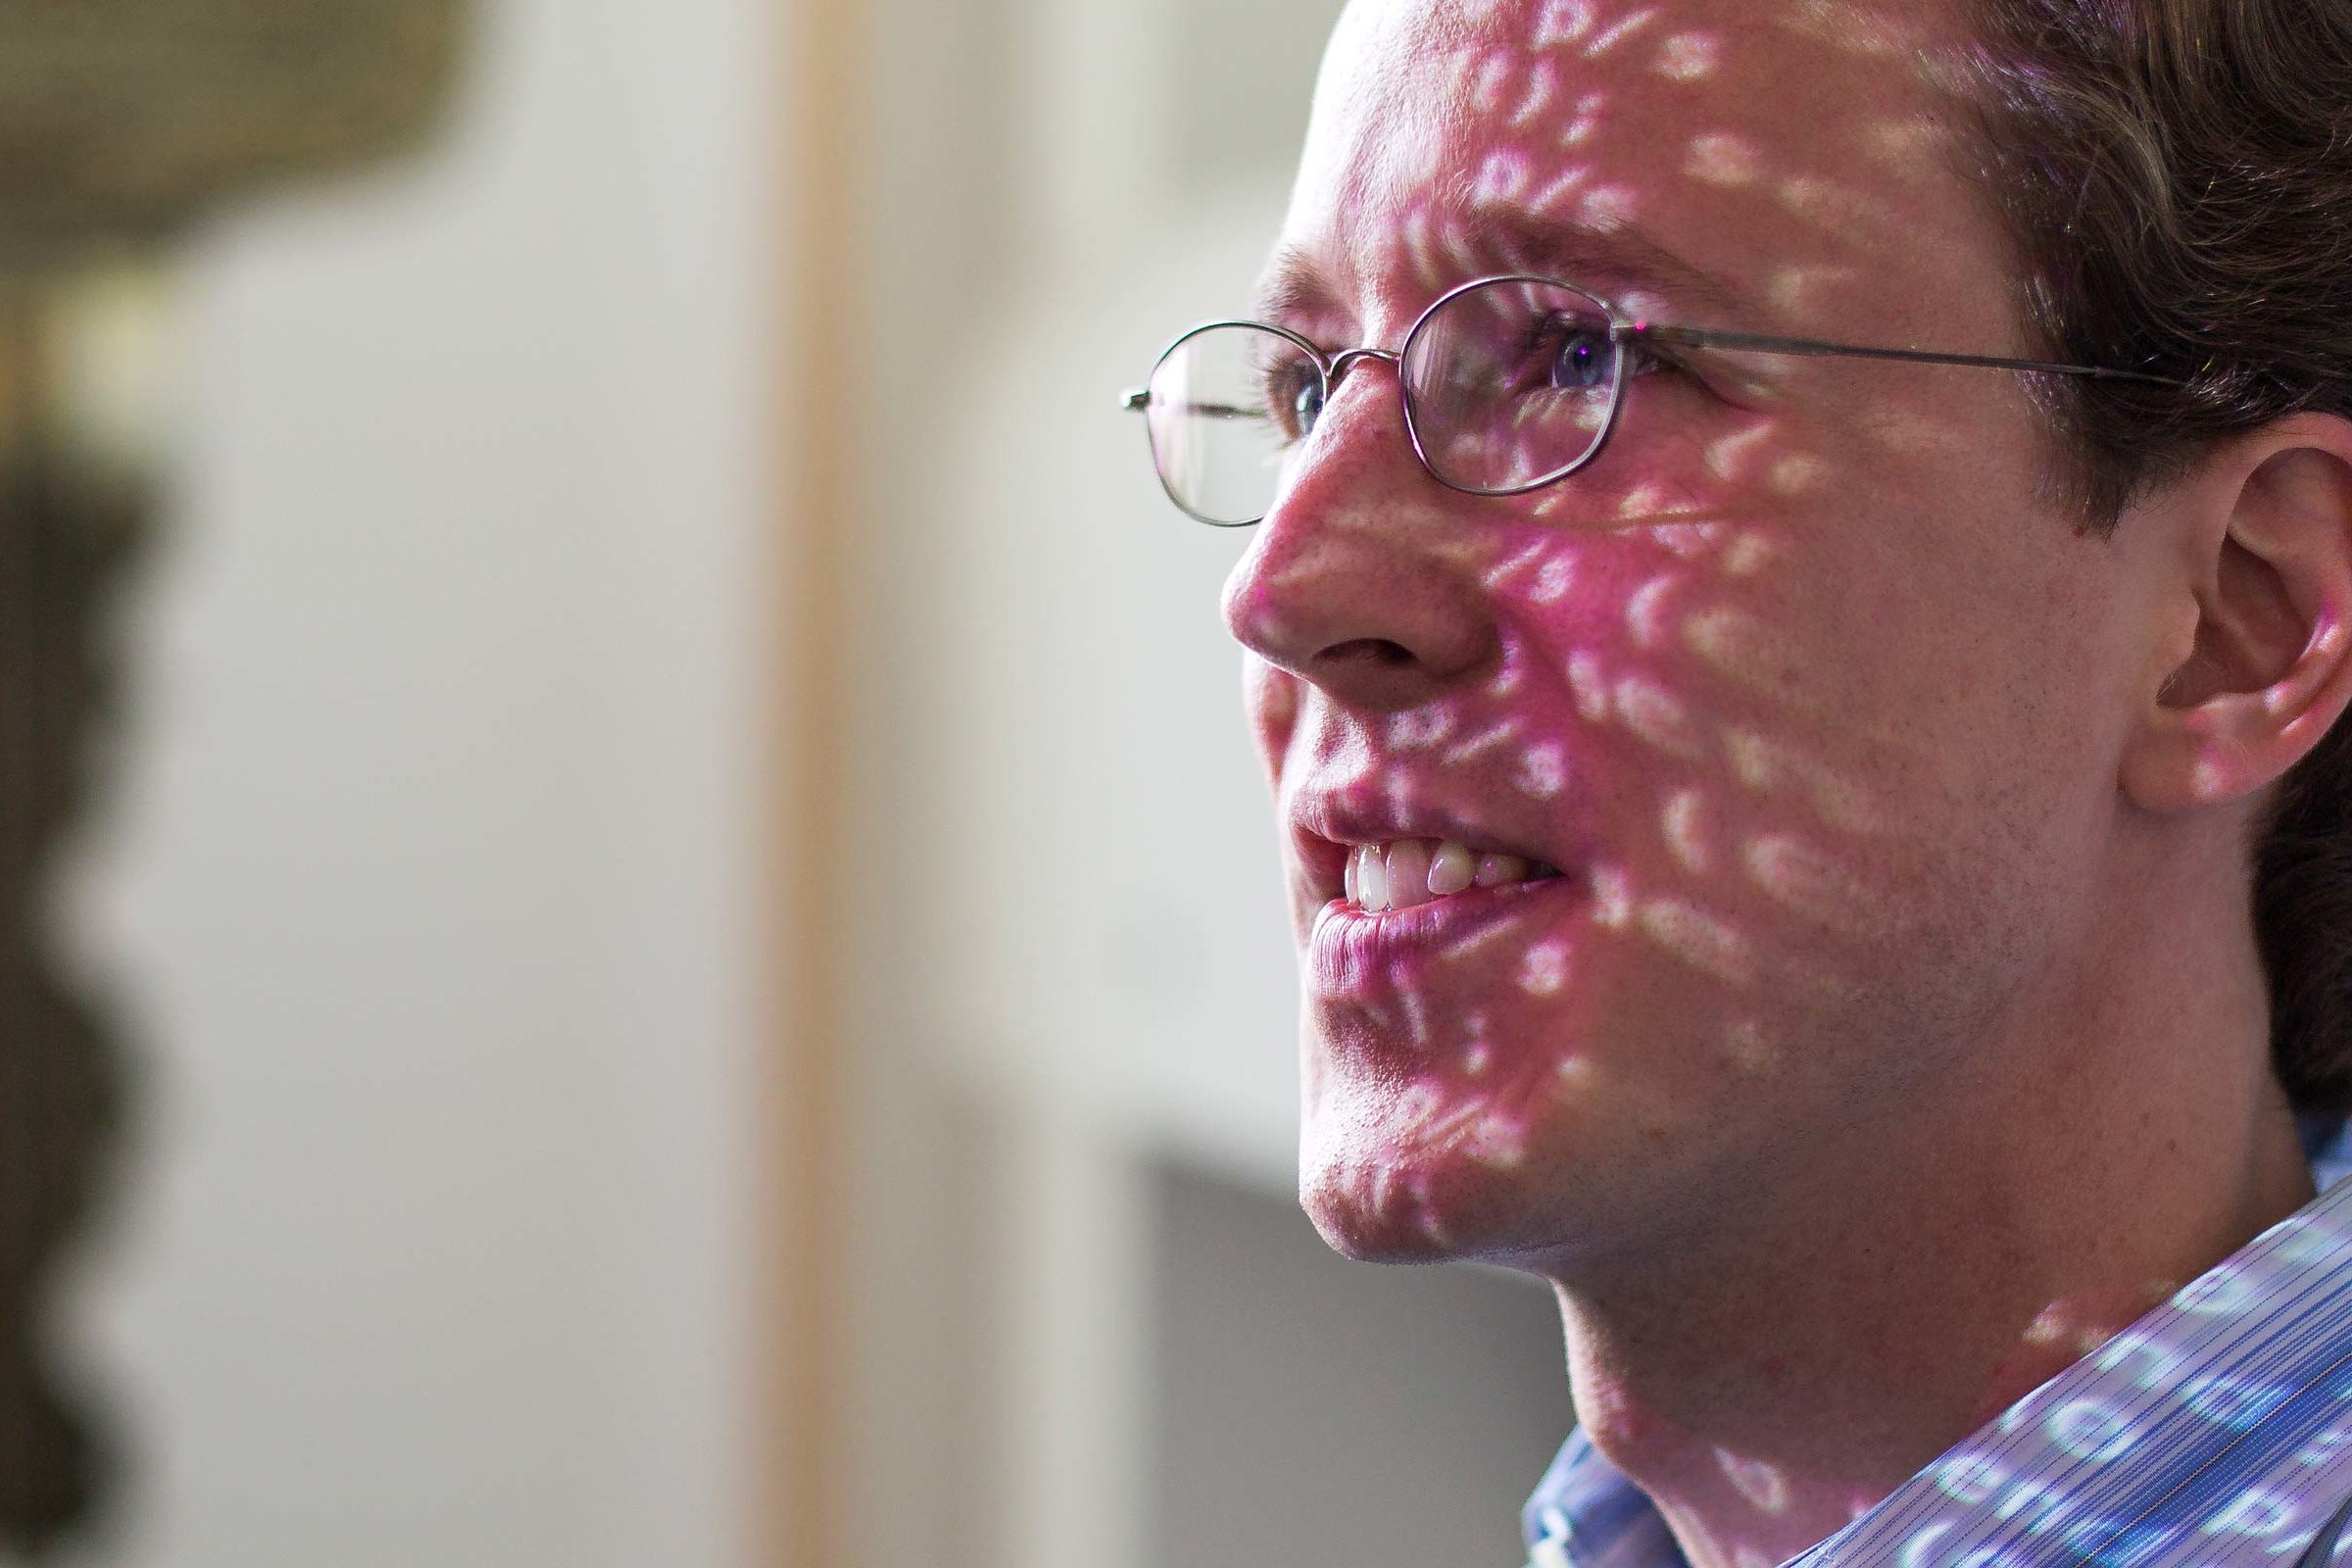 J. Alex Halderman in his office with ZMap characters projected over his face. Photo: Joseph Xu, Michigan Engineering.